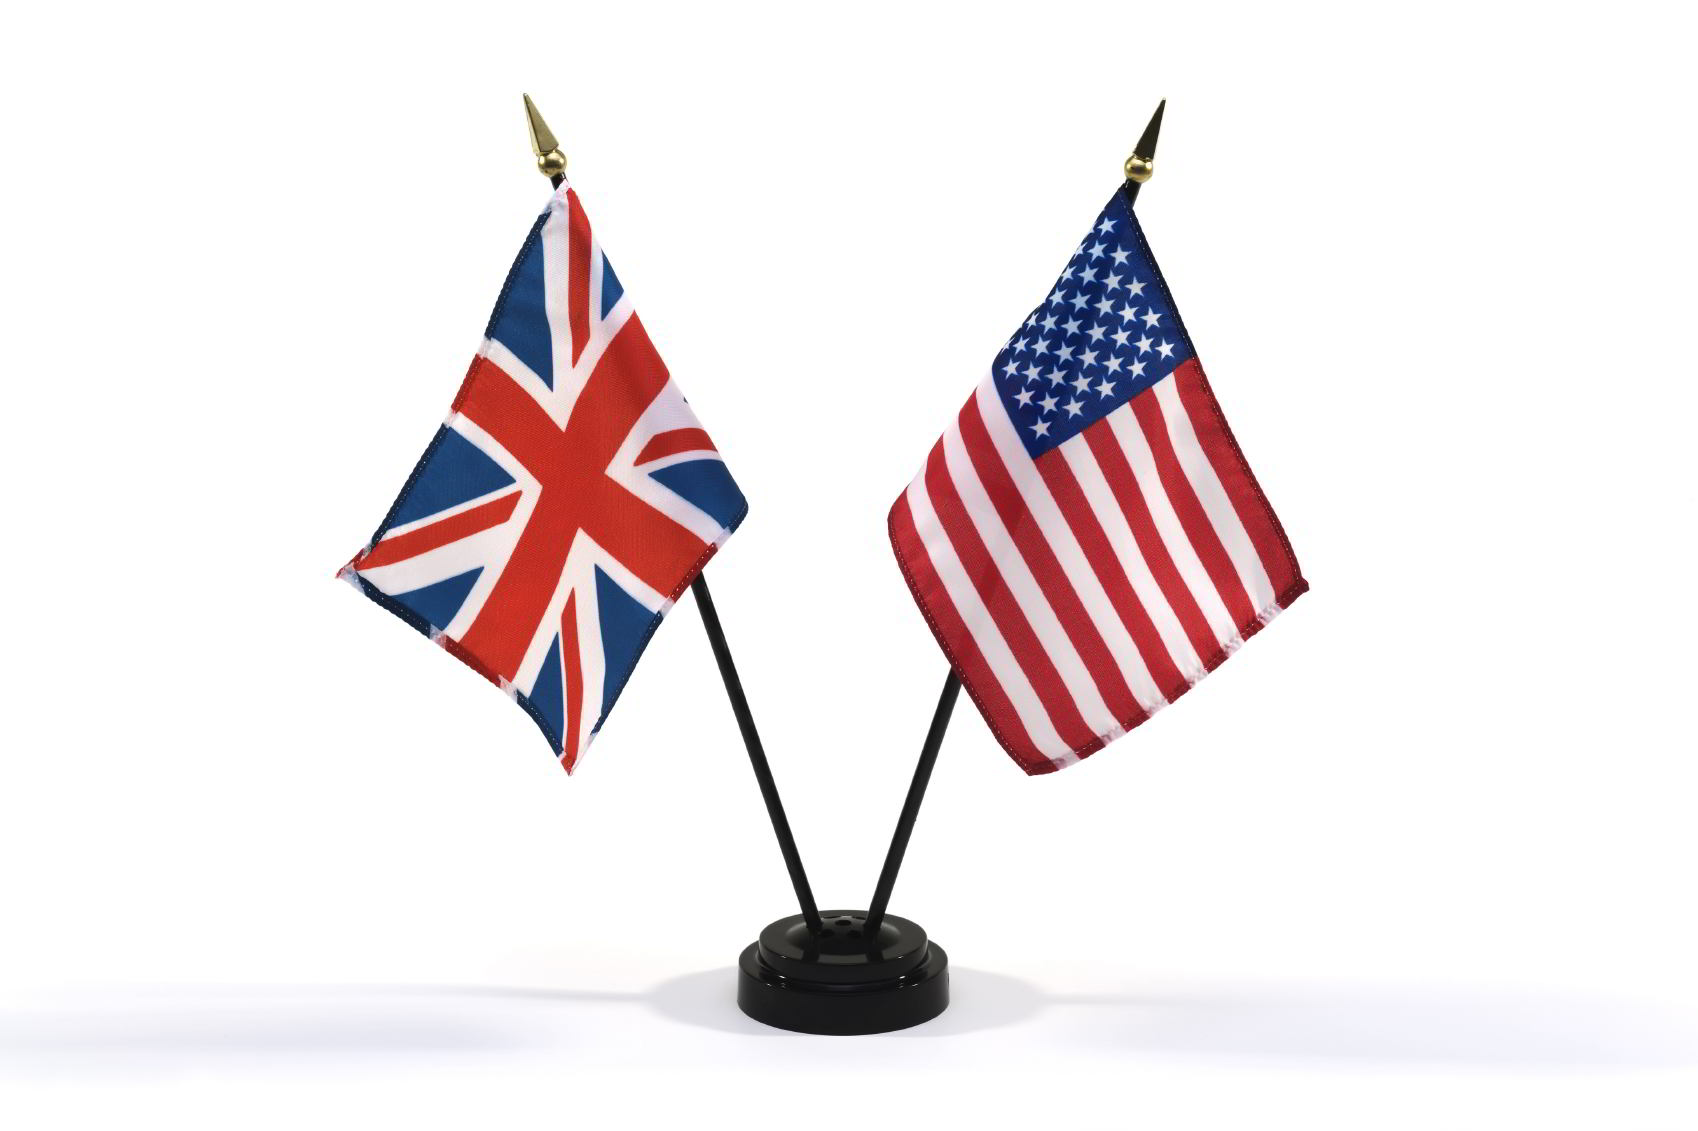 How to send money from the UK to the USA